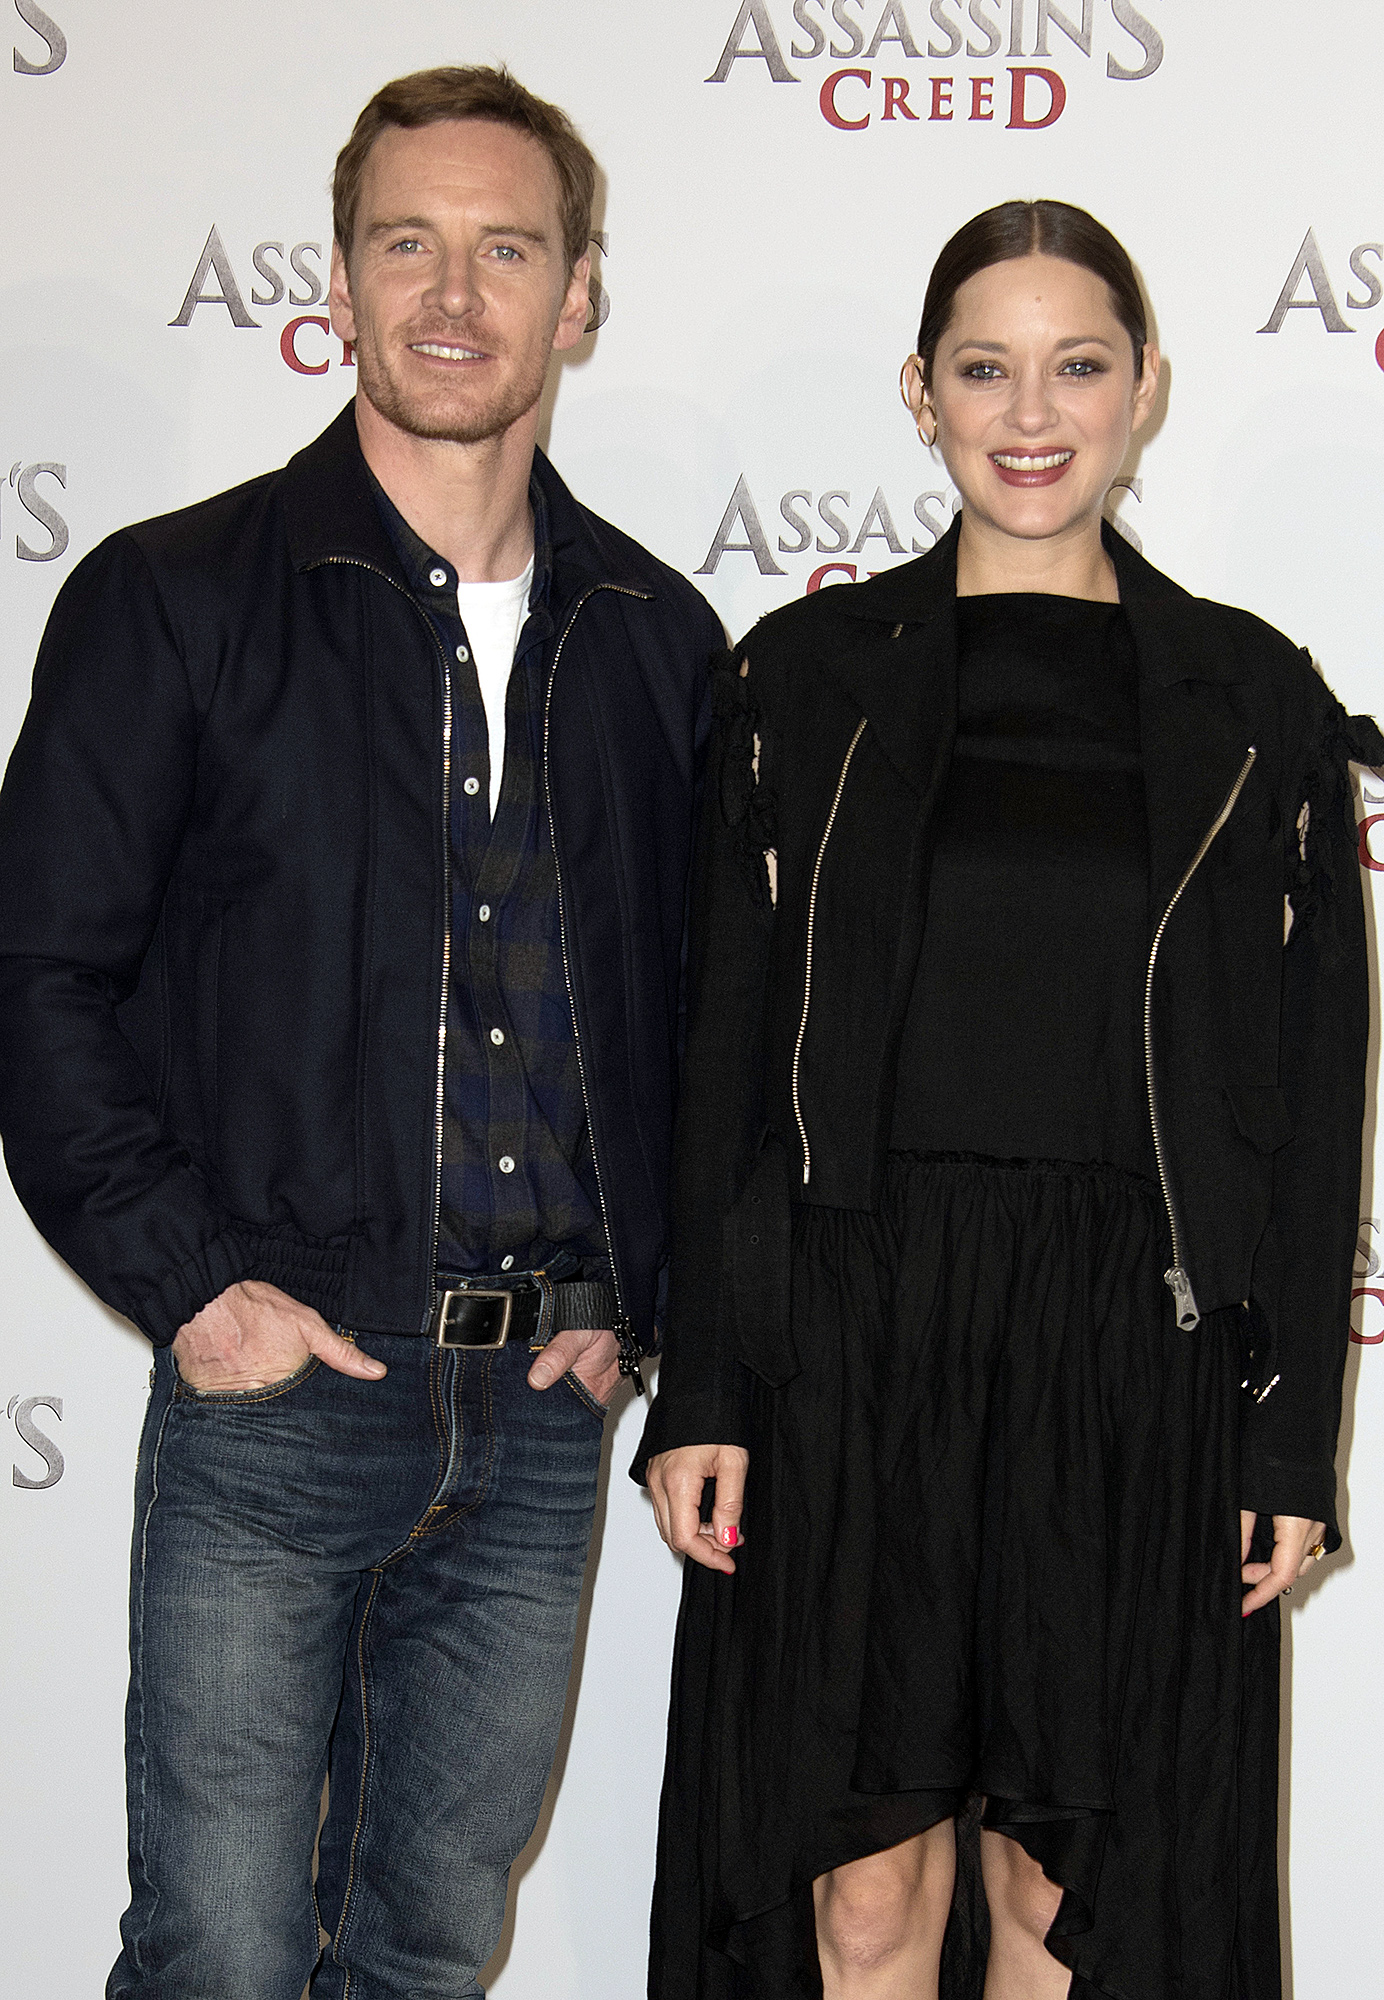 'Assassin's Creed' photocall at Cafe Moskau